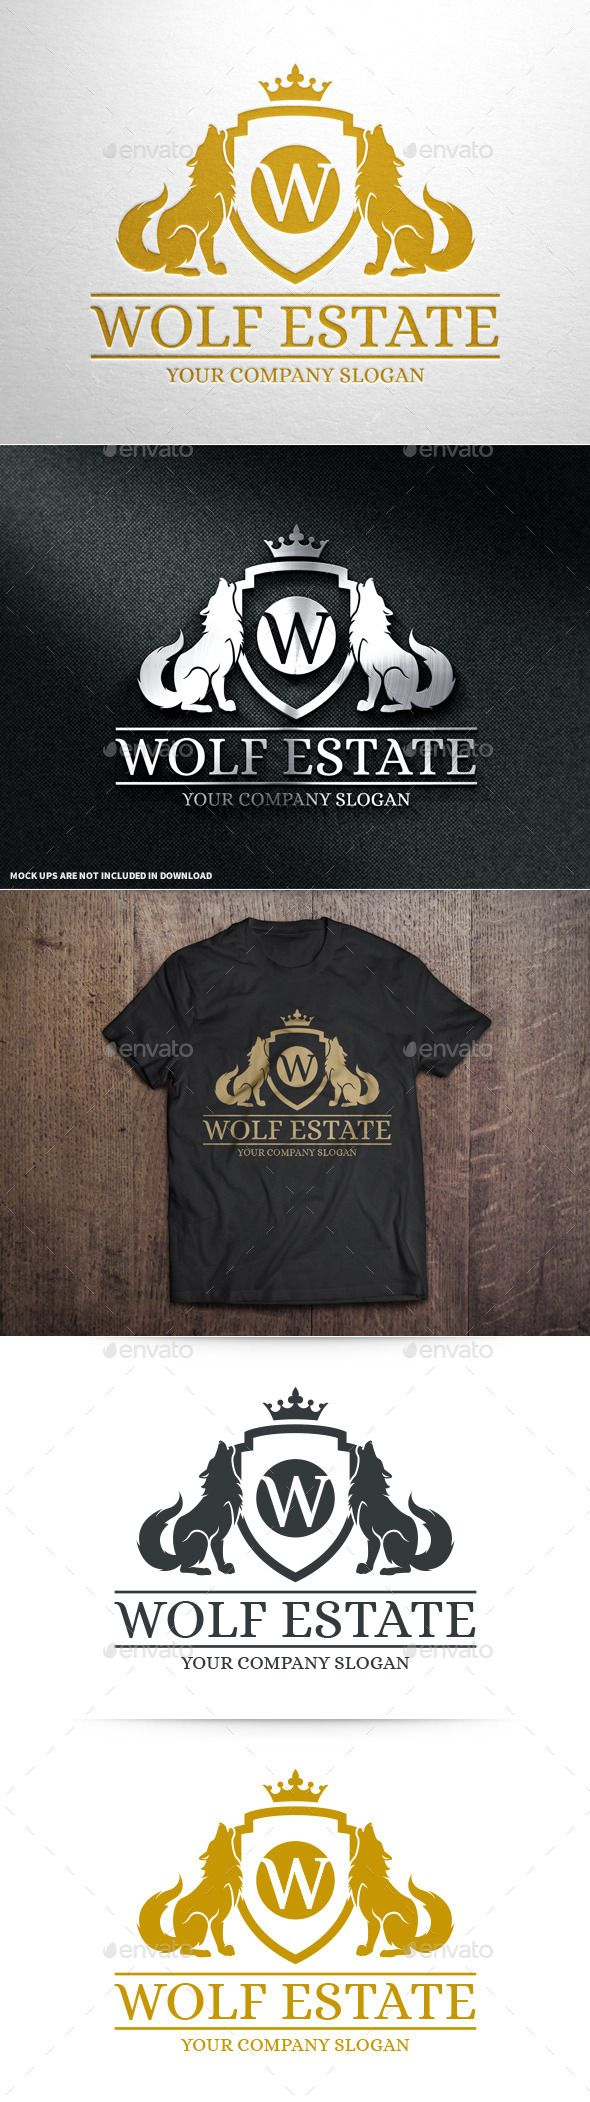 Wolf Estate Logo Template — Vector EPS #design #wolfs • Available here → https://graphicriver.net/item/wolf-estate-logo-template/10636115?ref=pxcr